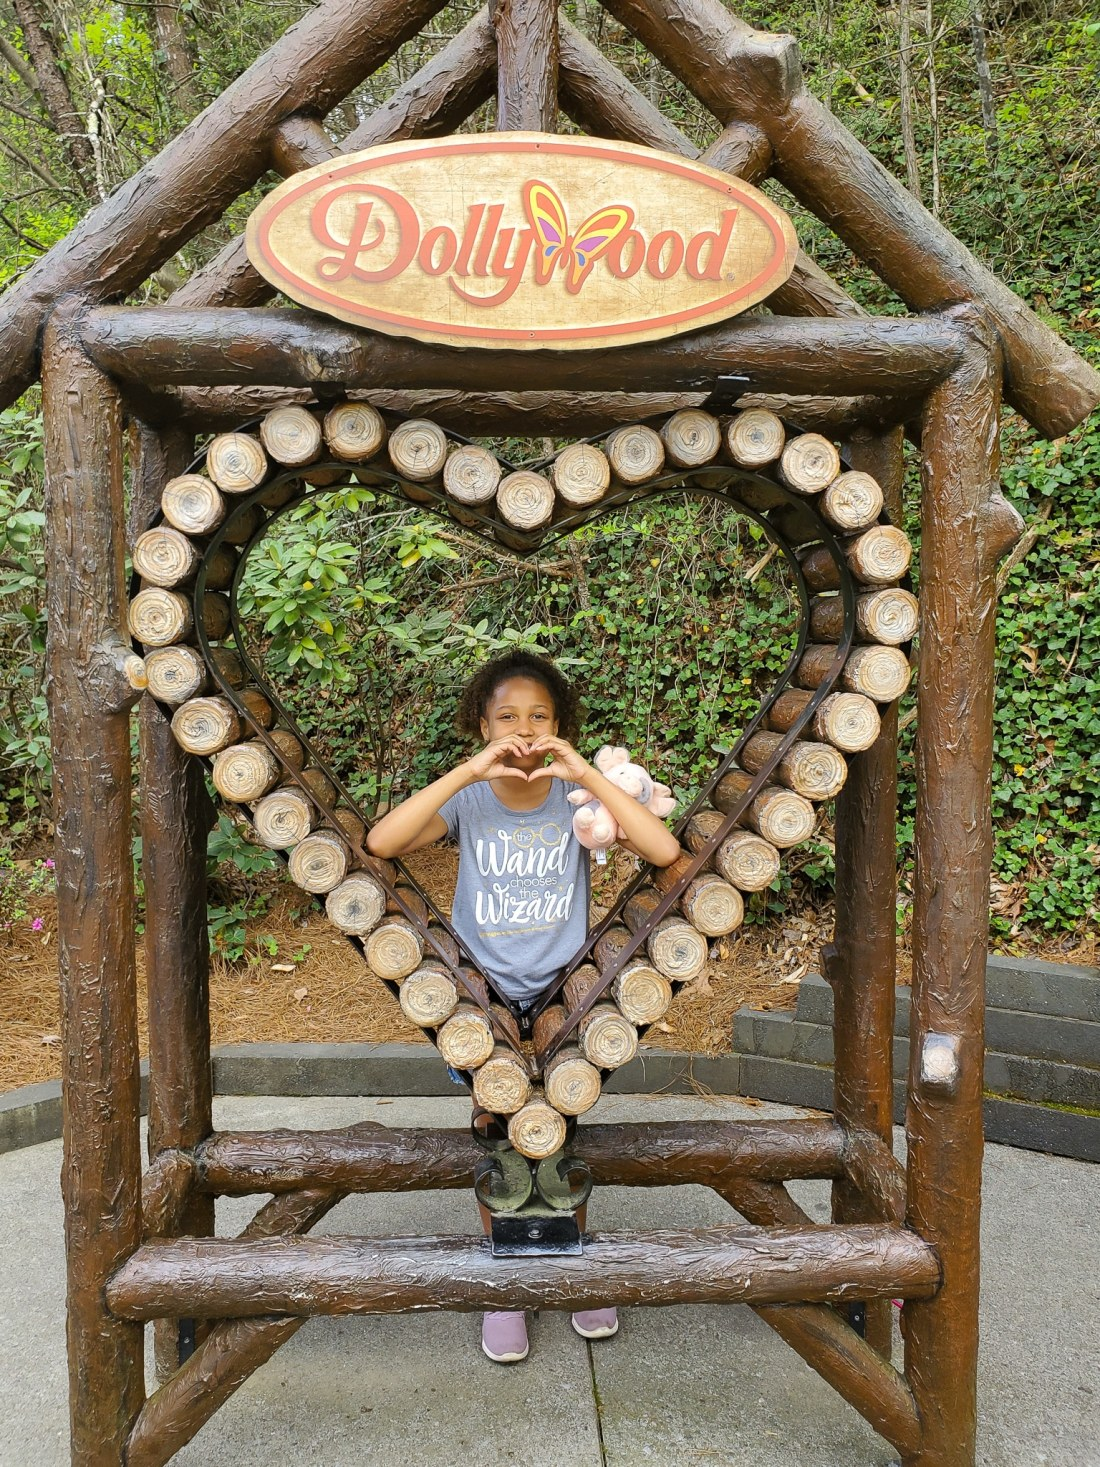 Dollywood Keturah. My family spent the day playing and eating at the Dollywood theme park, and we are happy to report we had a blast! Read all about our trip and learn why Dollwood is a must visit destination while you are in Pigeon Forge, TN.